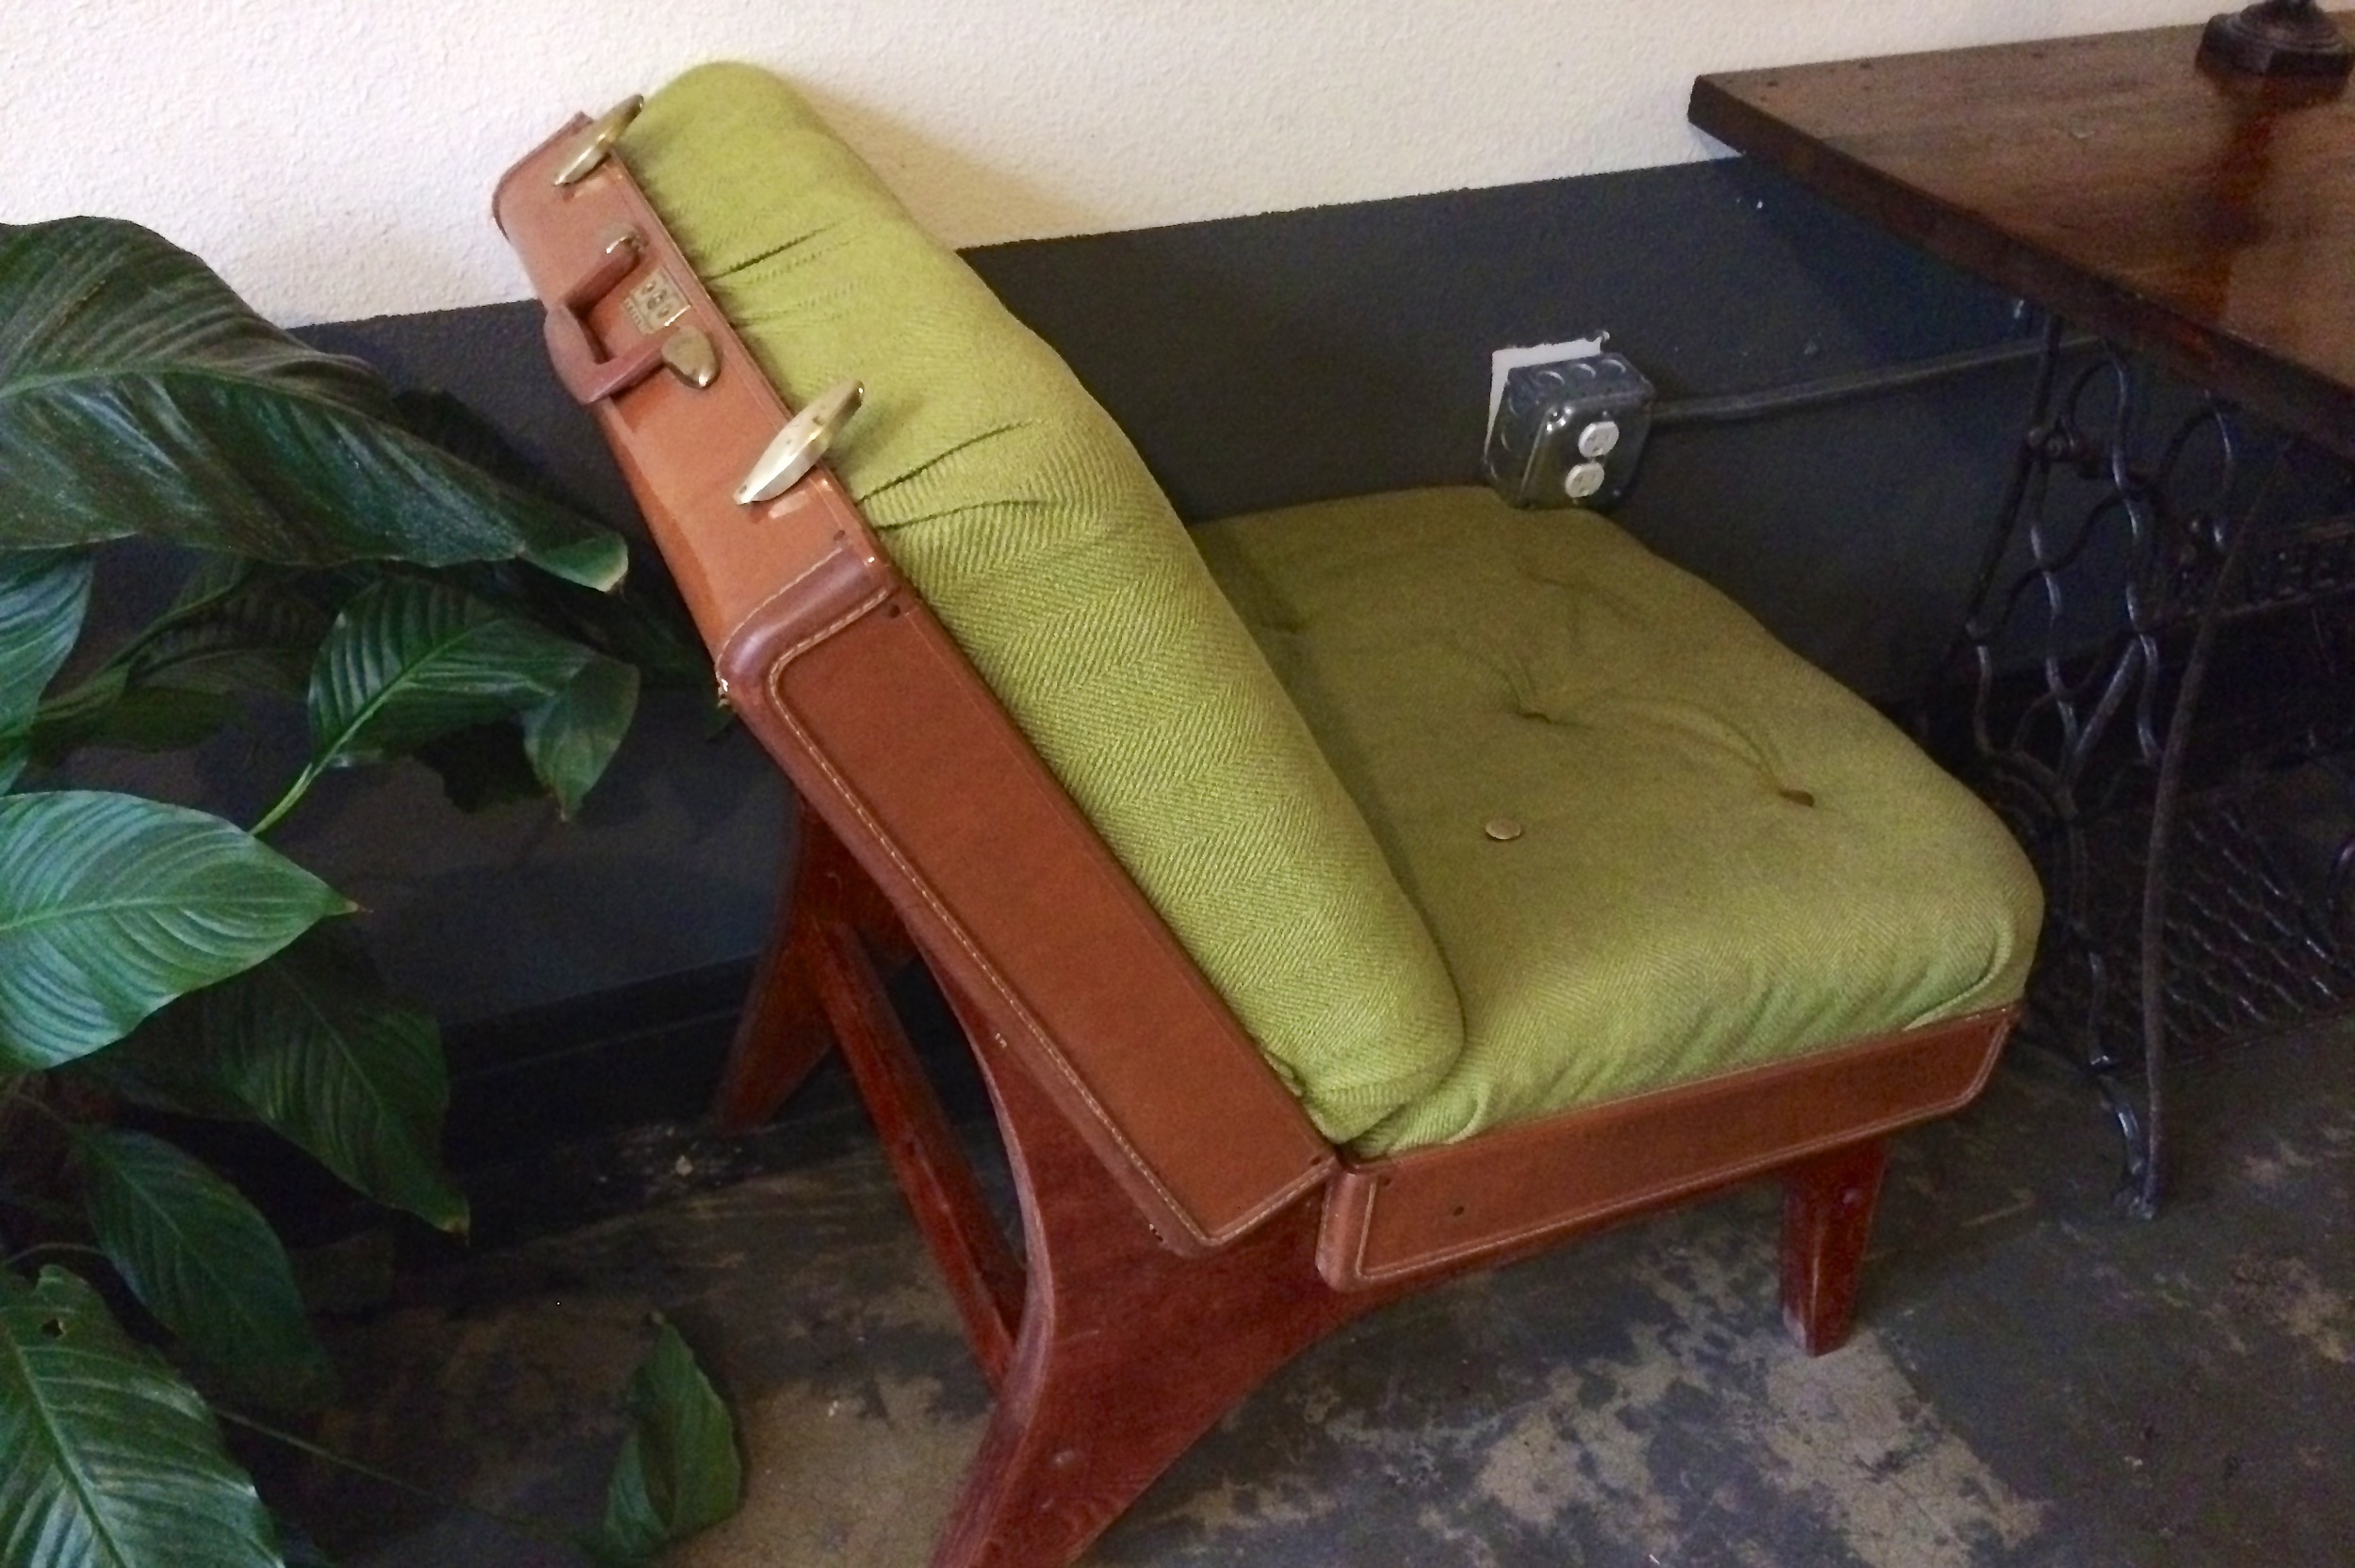 Suitcase chair at the Firehouse Hostel